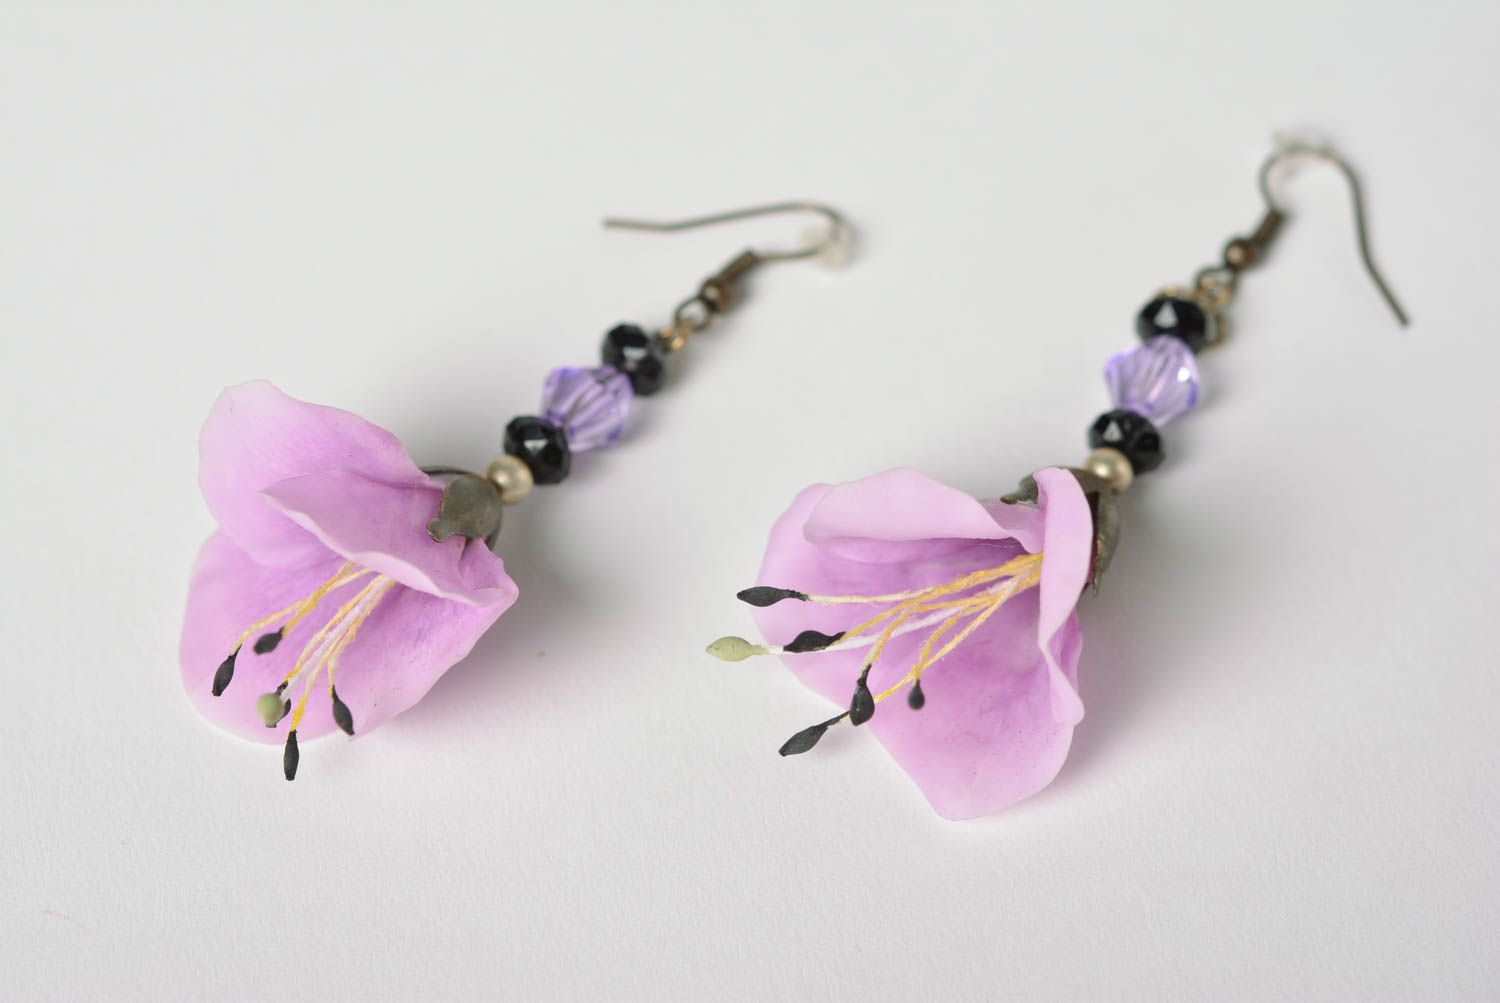 Handmade Japanese polymer clay dangling  earrings with long violet flowers photo 3